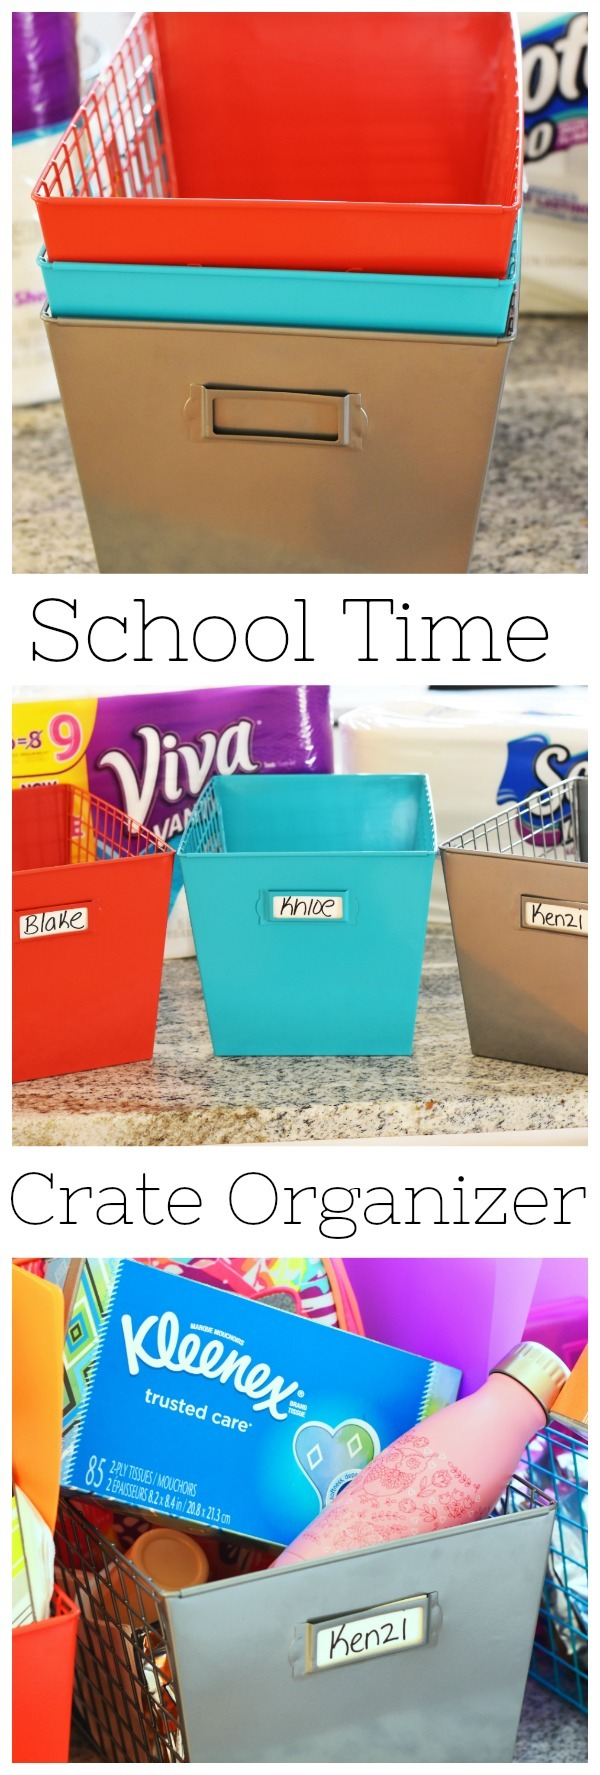 School Time Crate Organizer